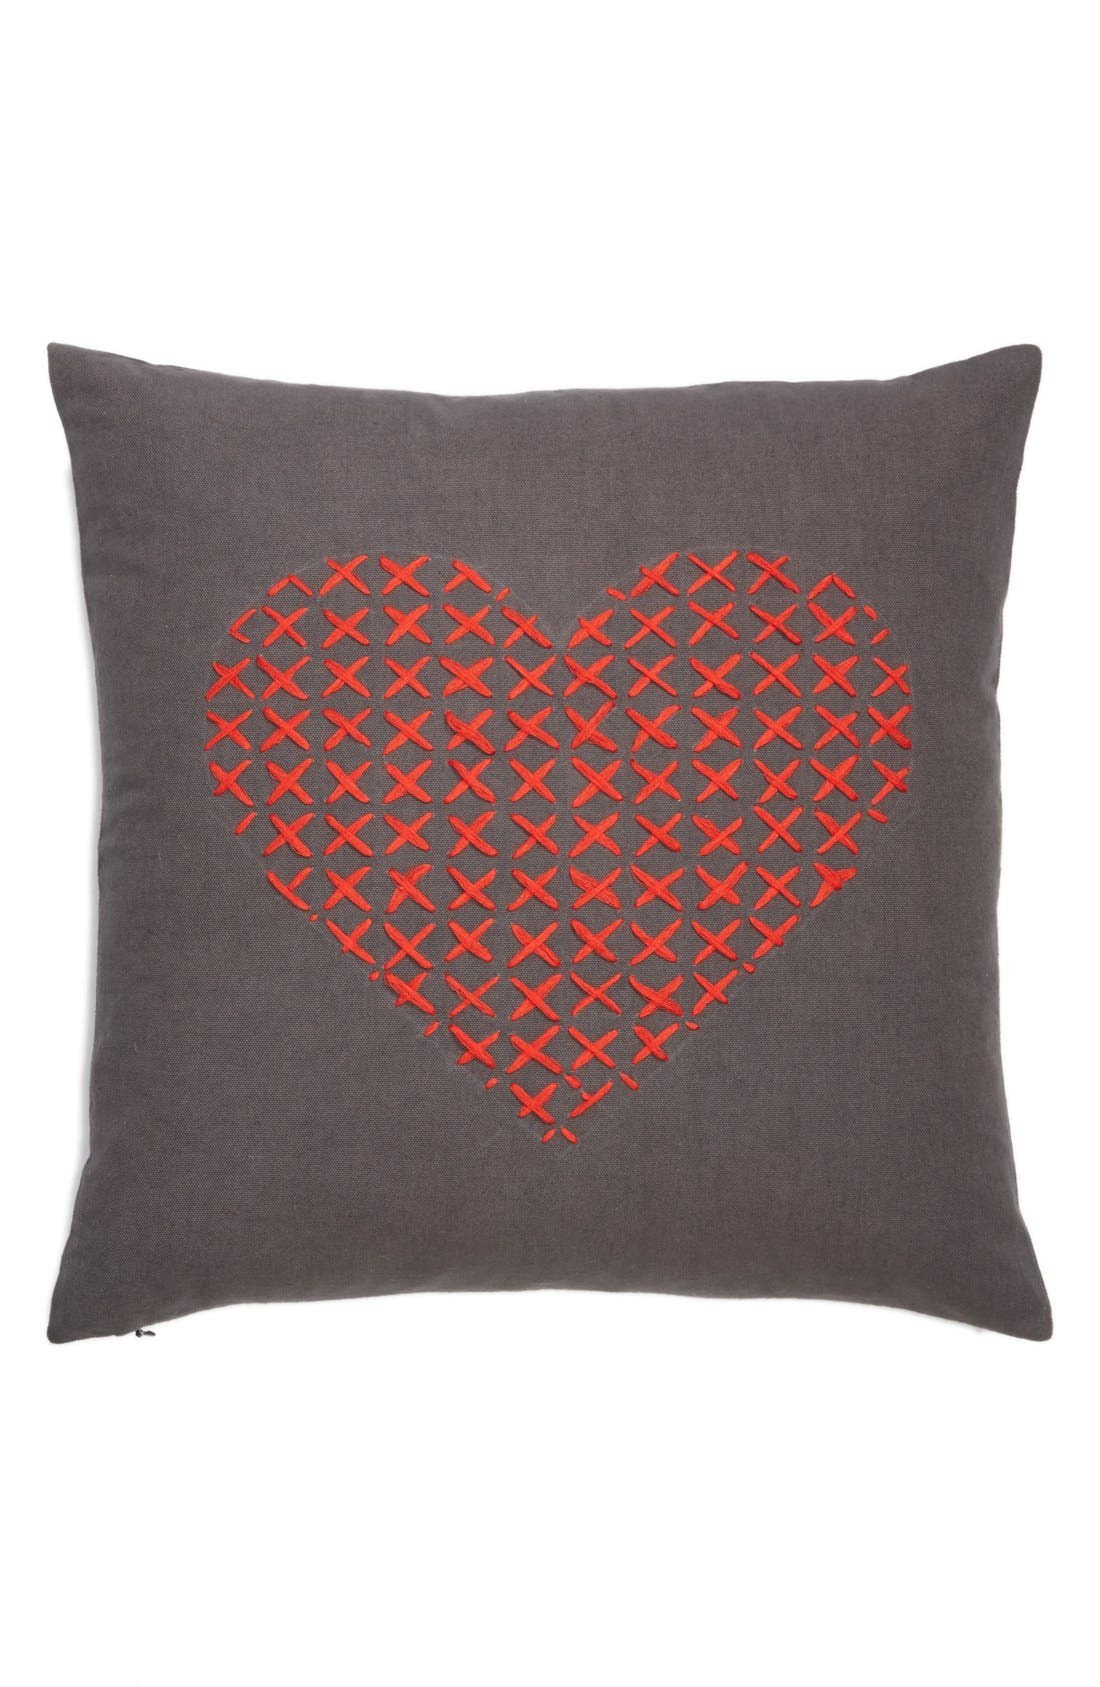 Main Image - Nordstrom at Home 'Cross My Heart' Pillow